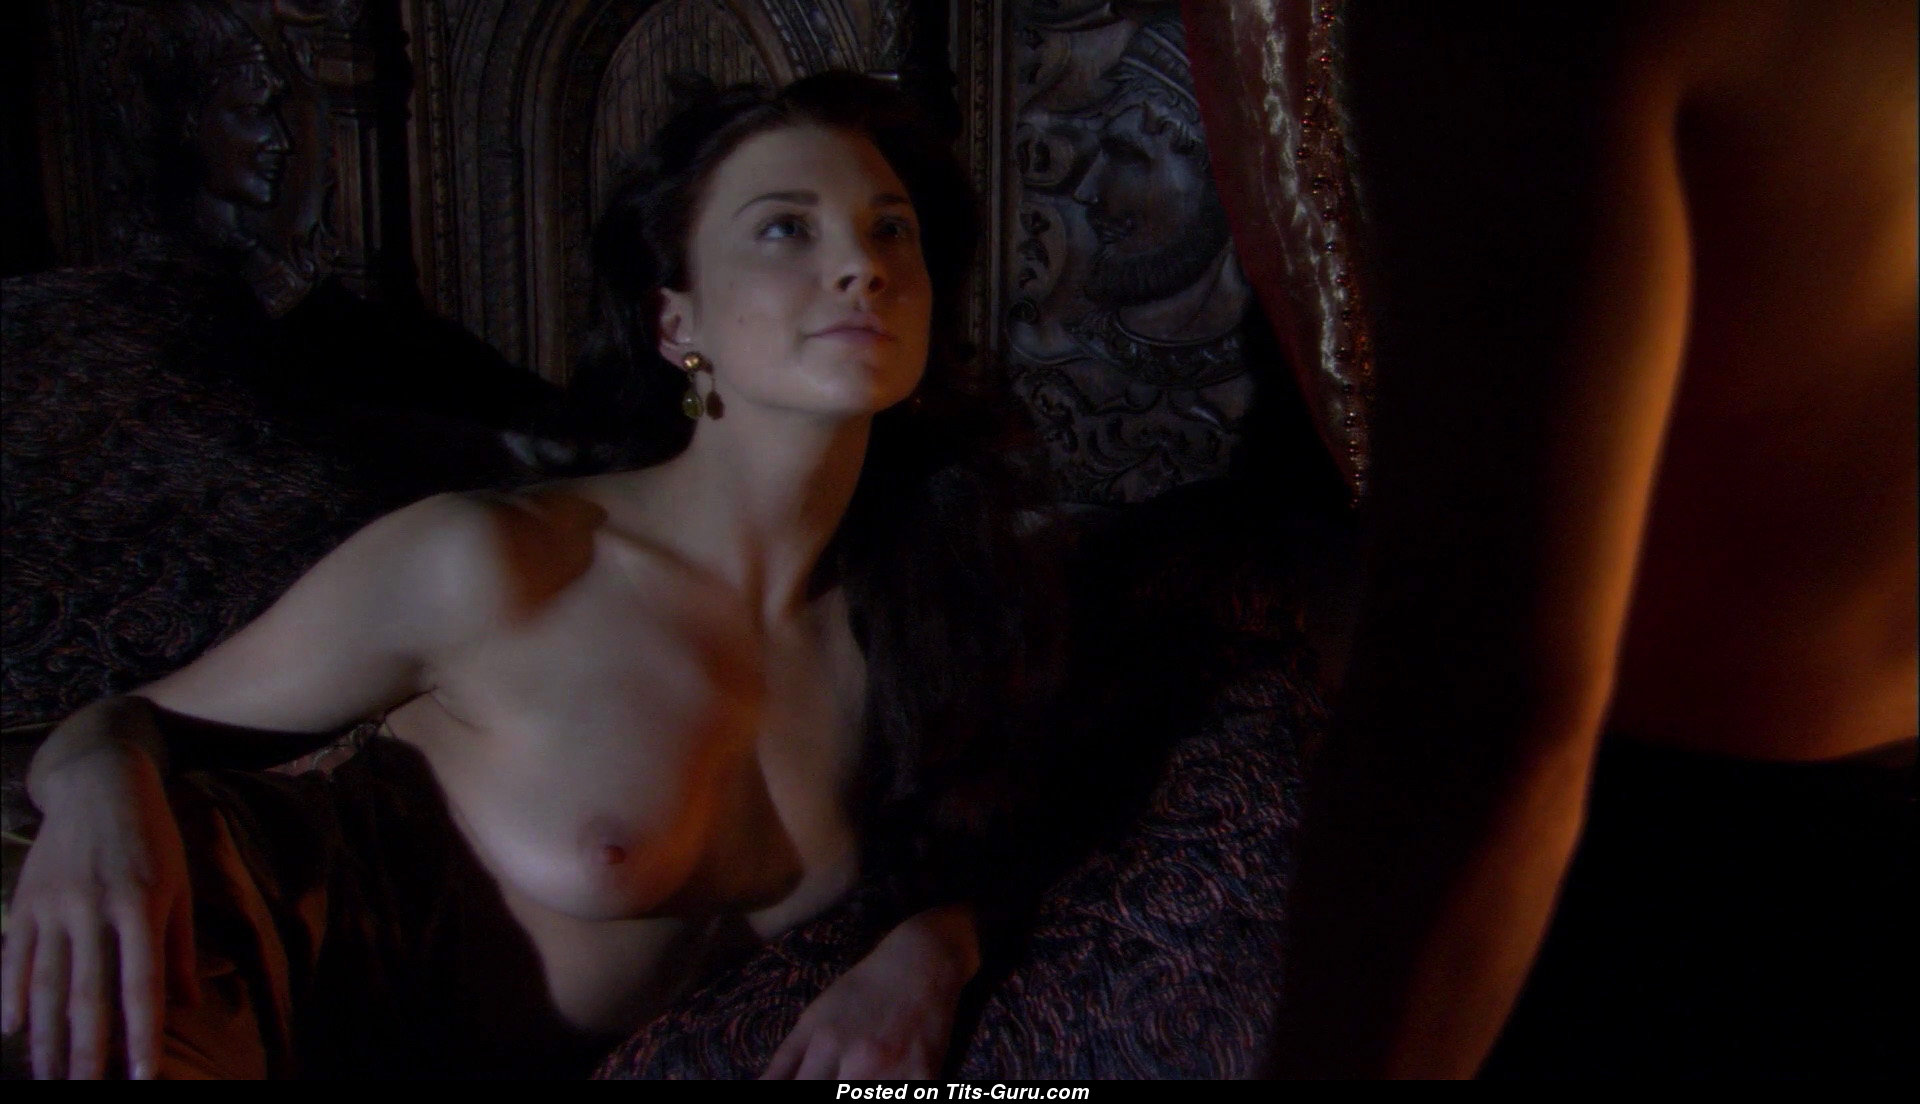 Boobs Natalie Dormer nudes (33 foto and video), Sexy, Fappening, Instagram, lingerie 2018